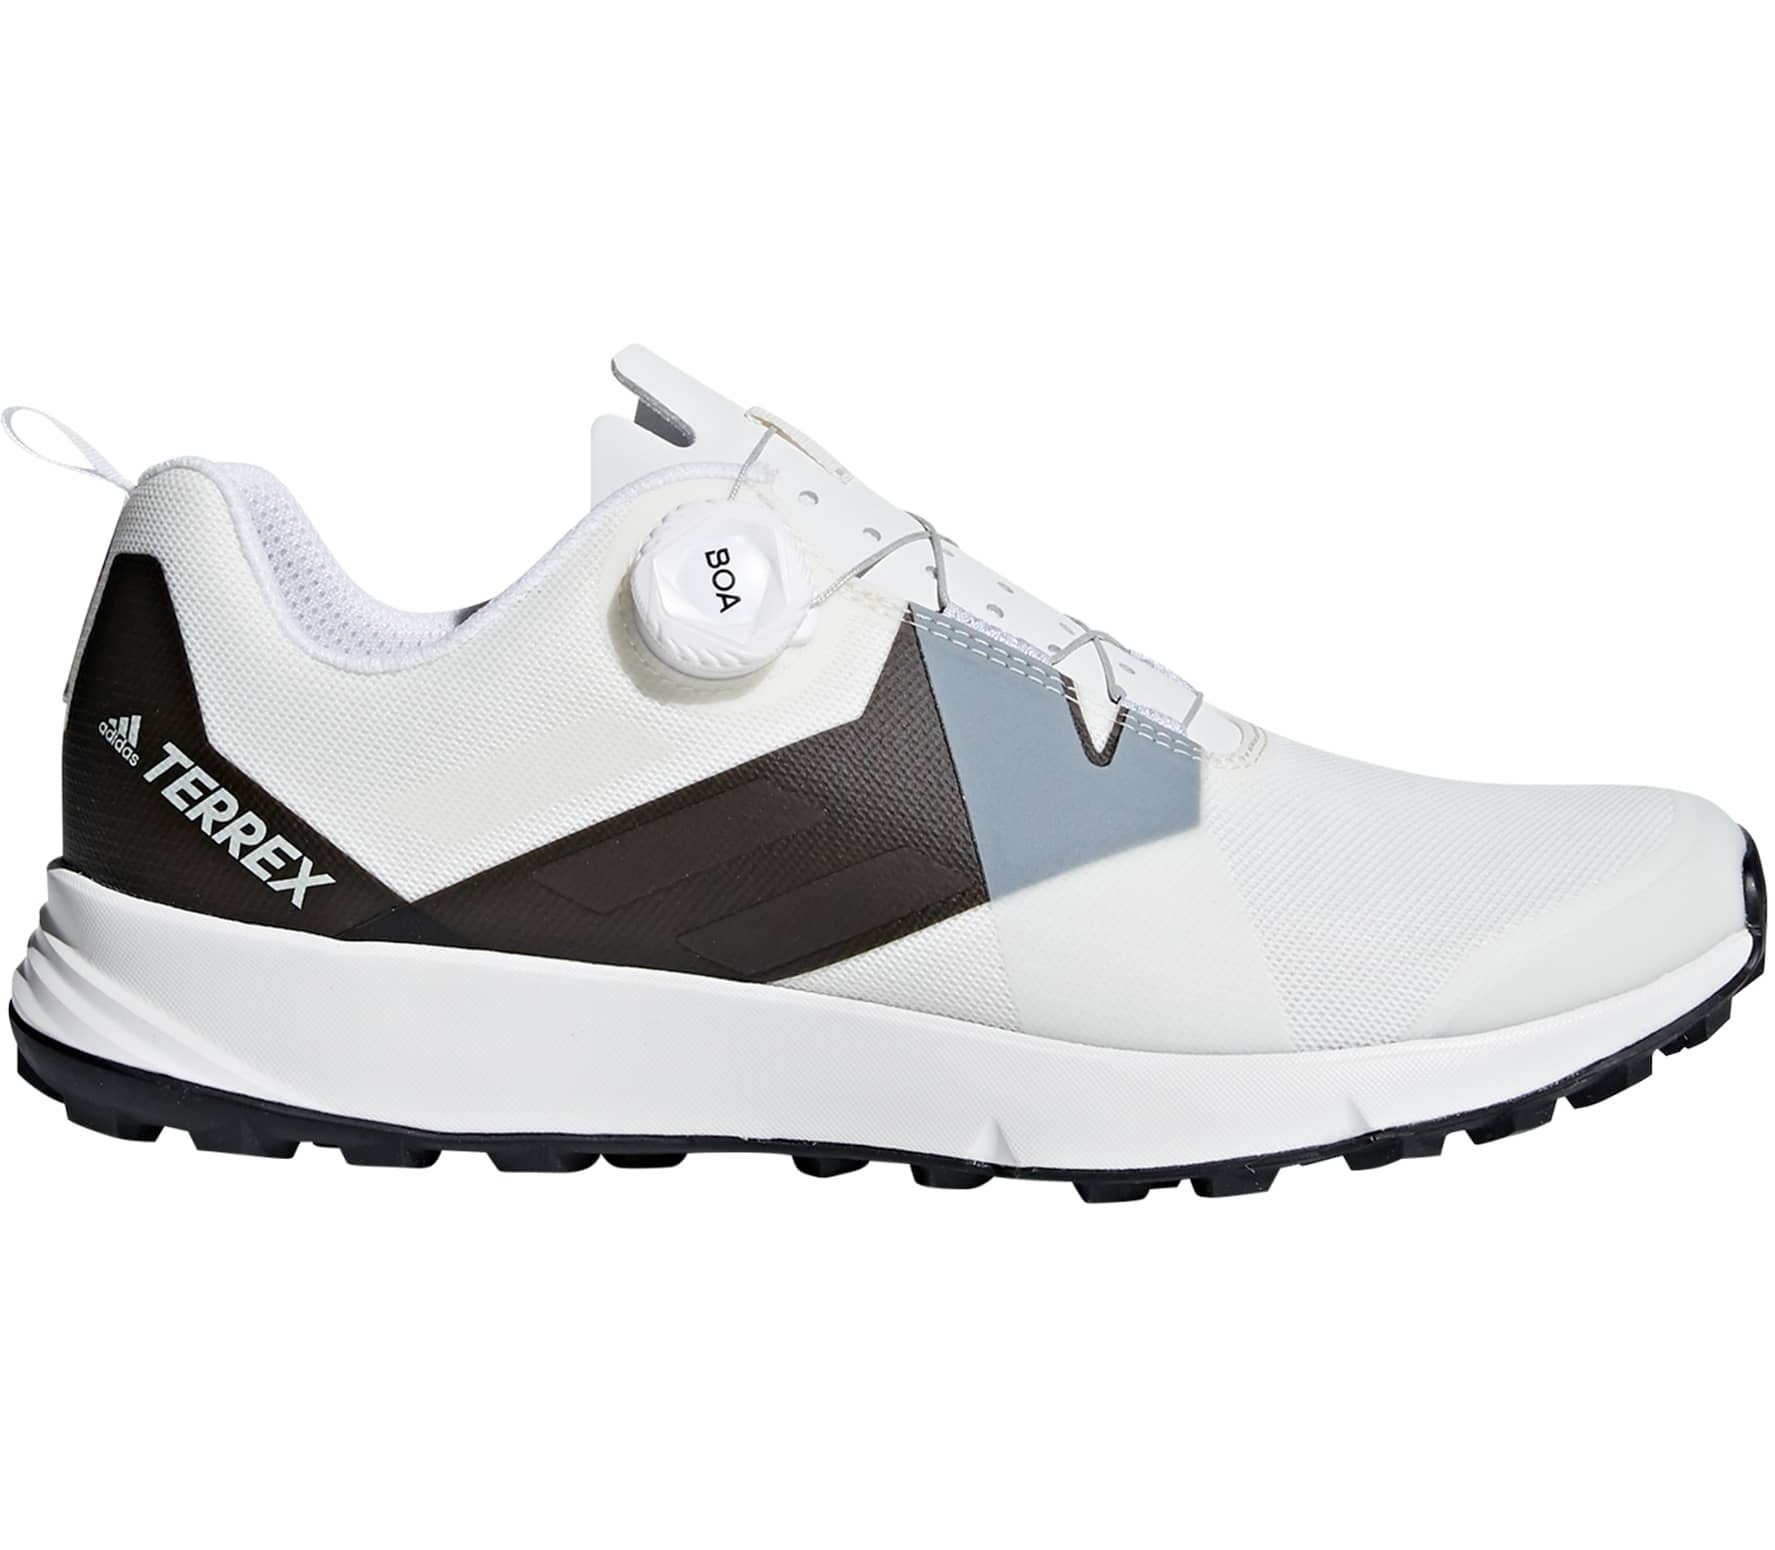 reputable site 7f34d d0165 Adidas - Terrex Two Boa men s mountain running shoes (white grey)